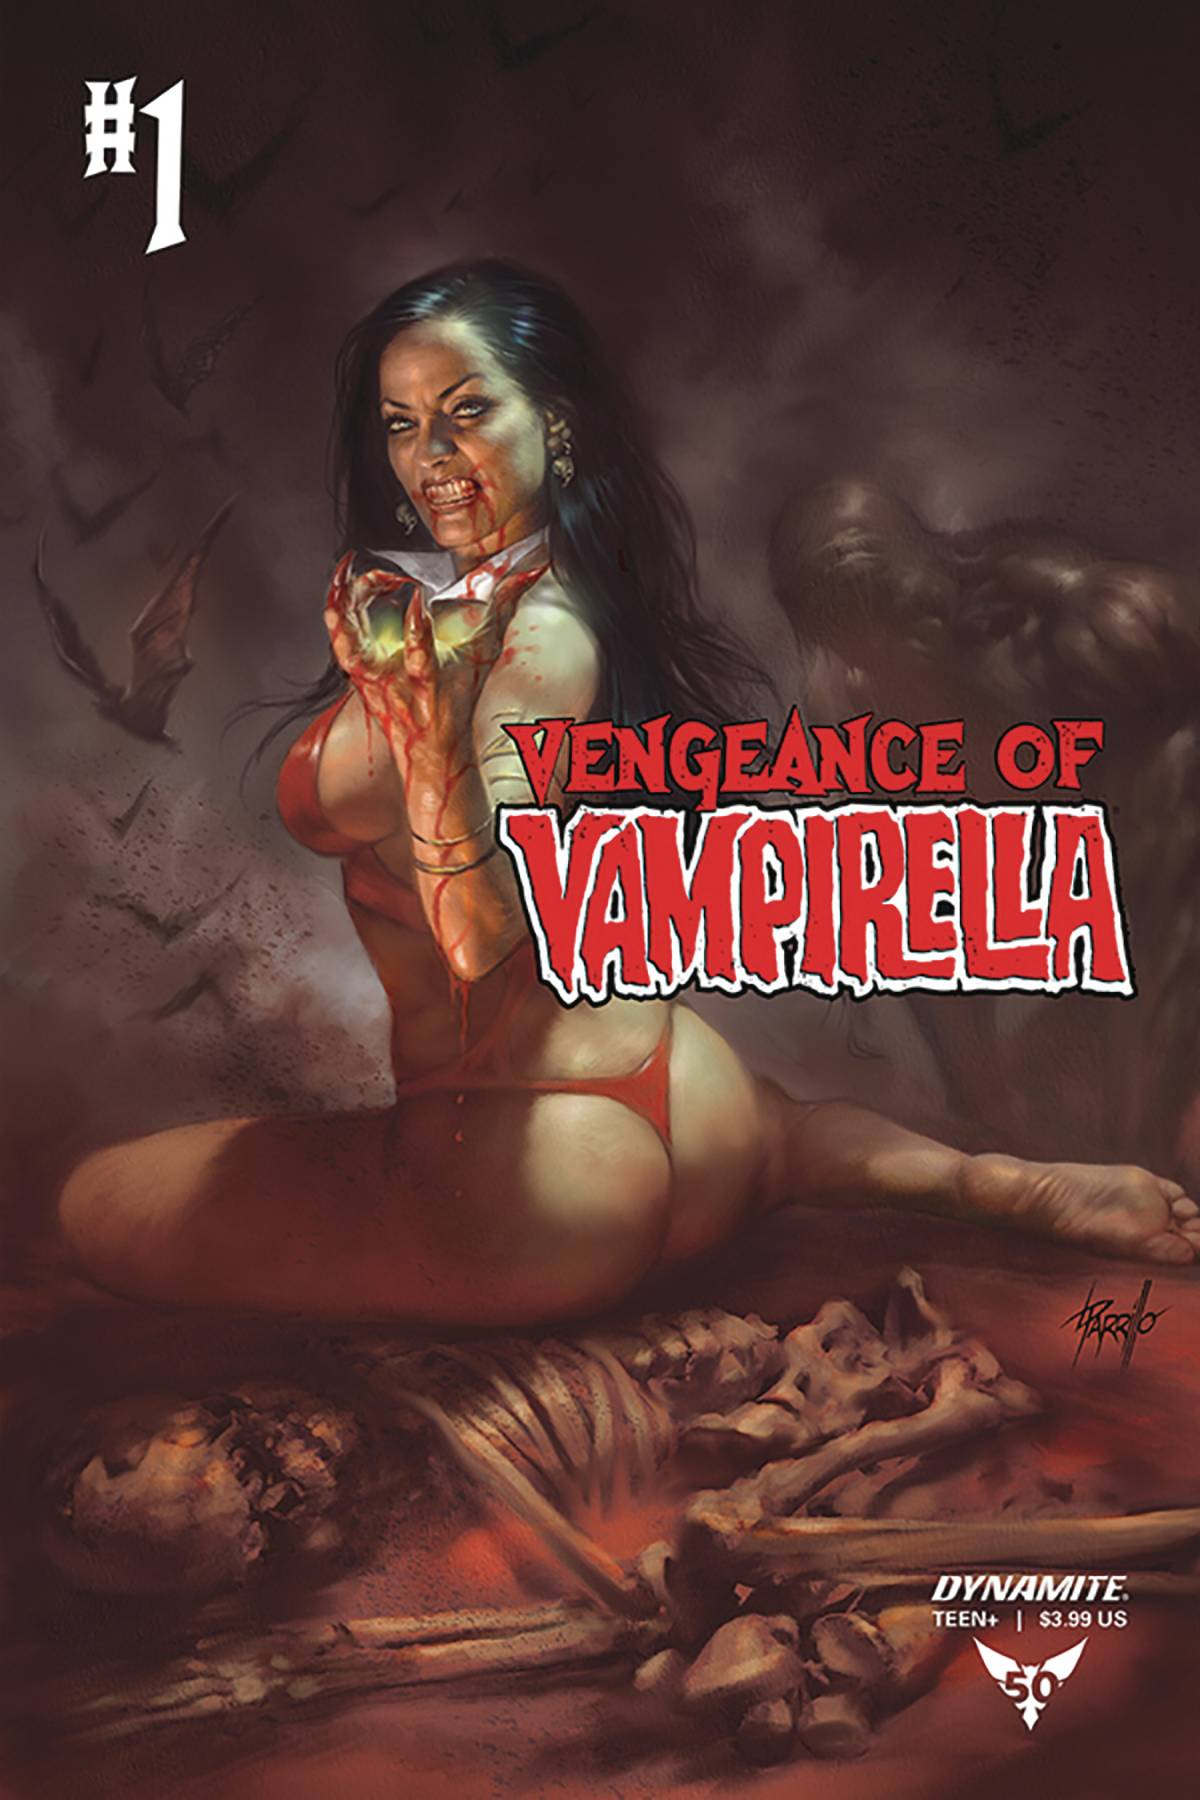 VENGEANCE OF VAMPIRELLA #1 CVR D PARRILLO